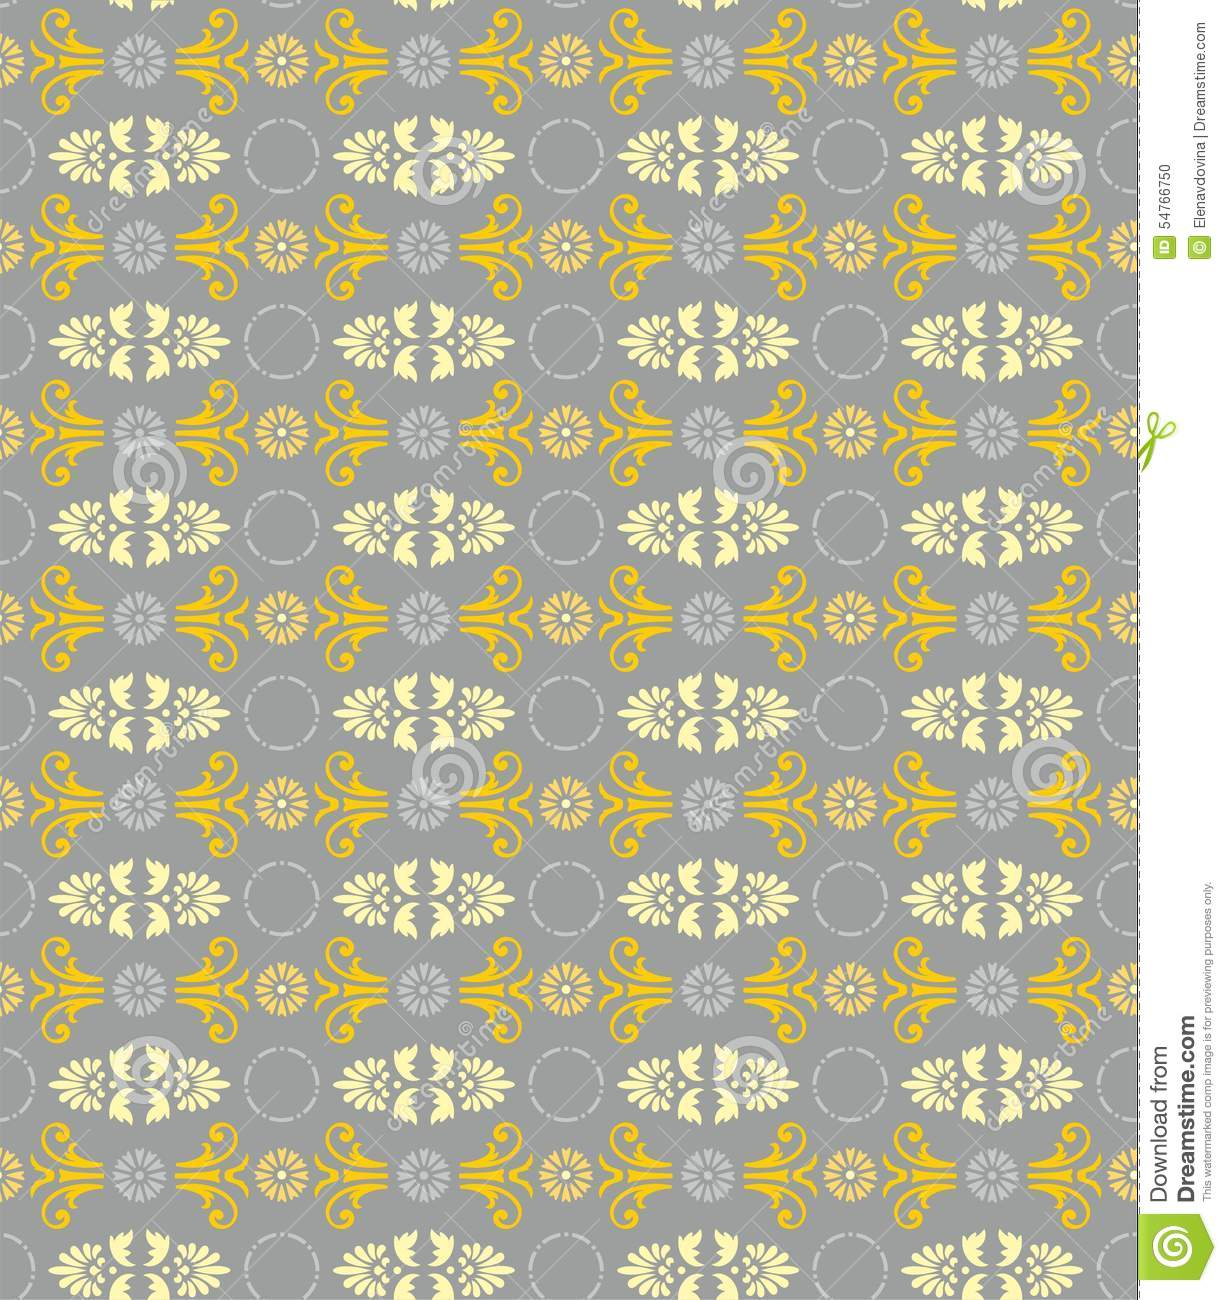 Seamless Floral Pattern Gray And Yellow Flowers On A Gray